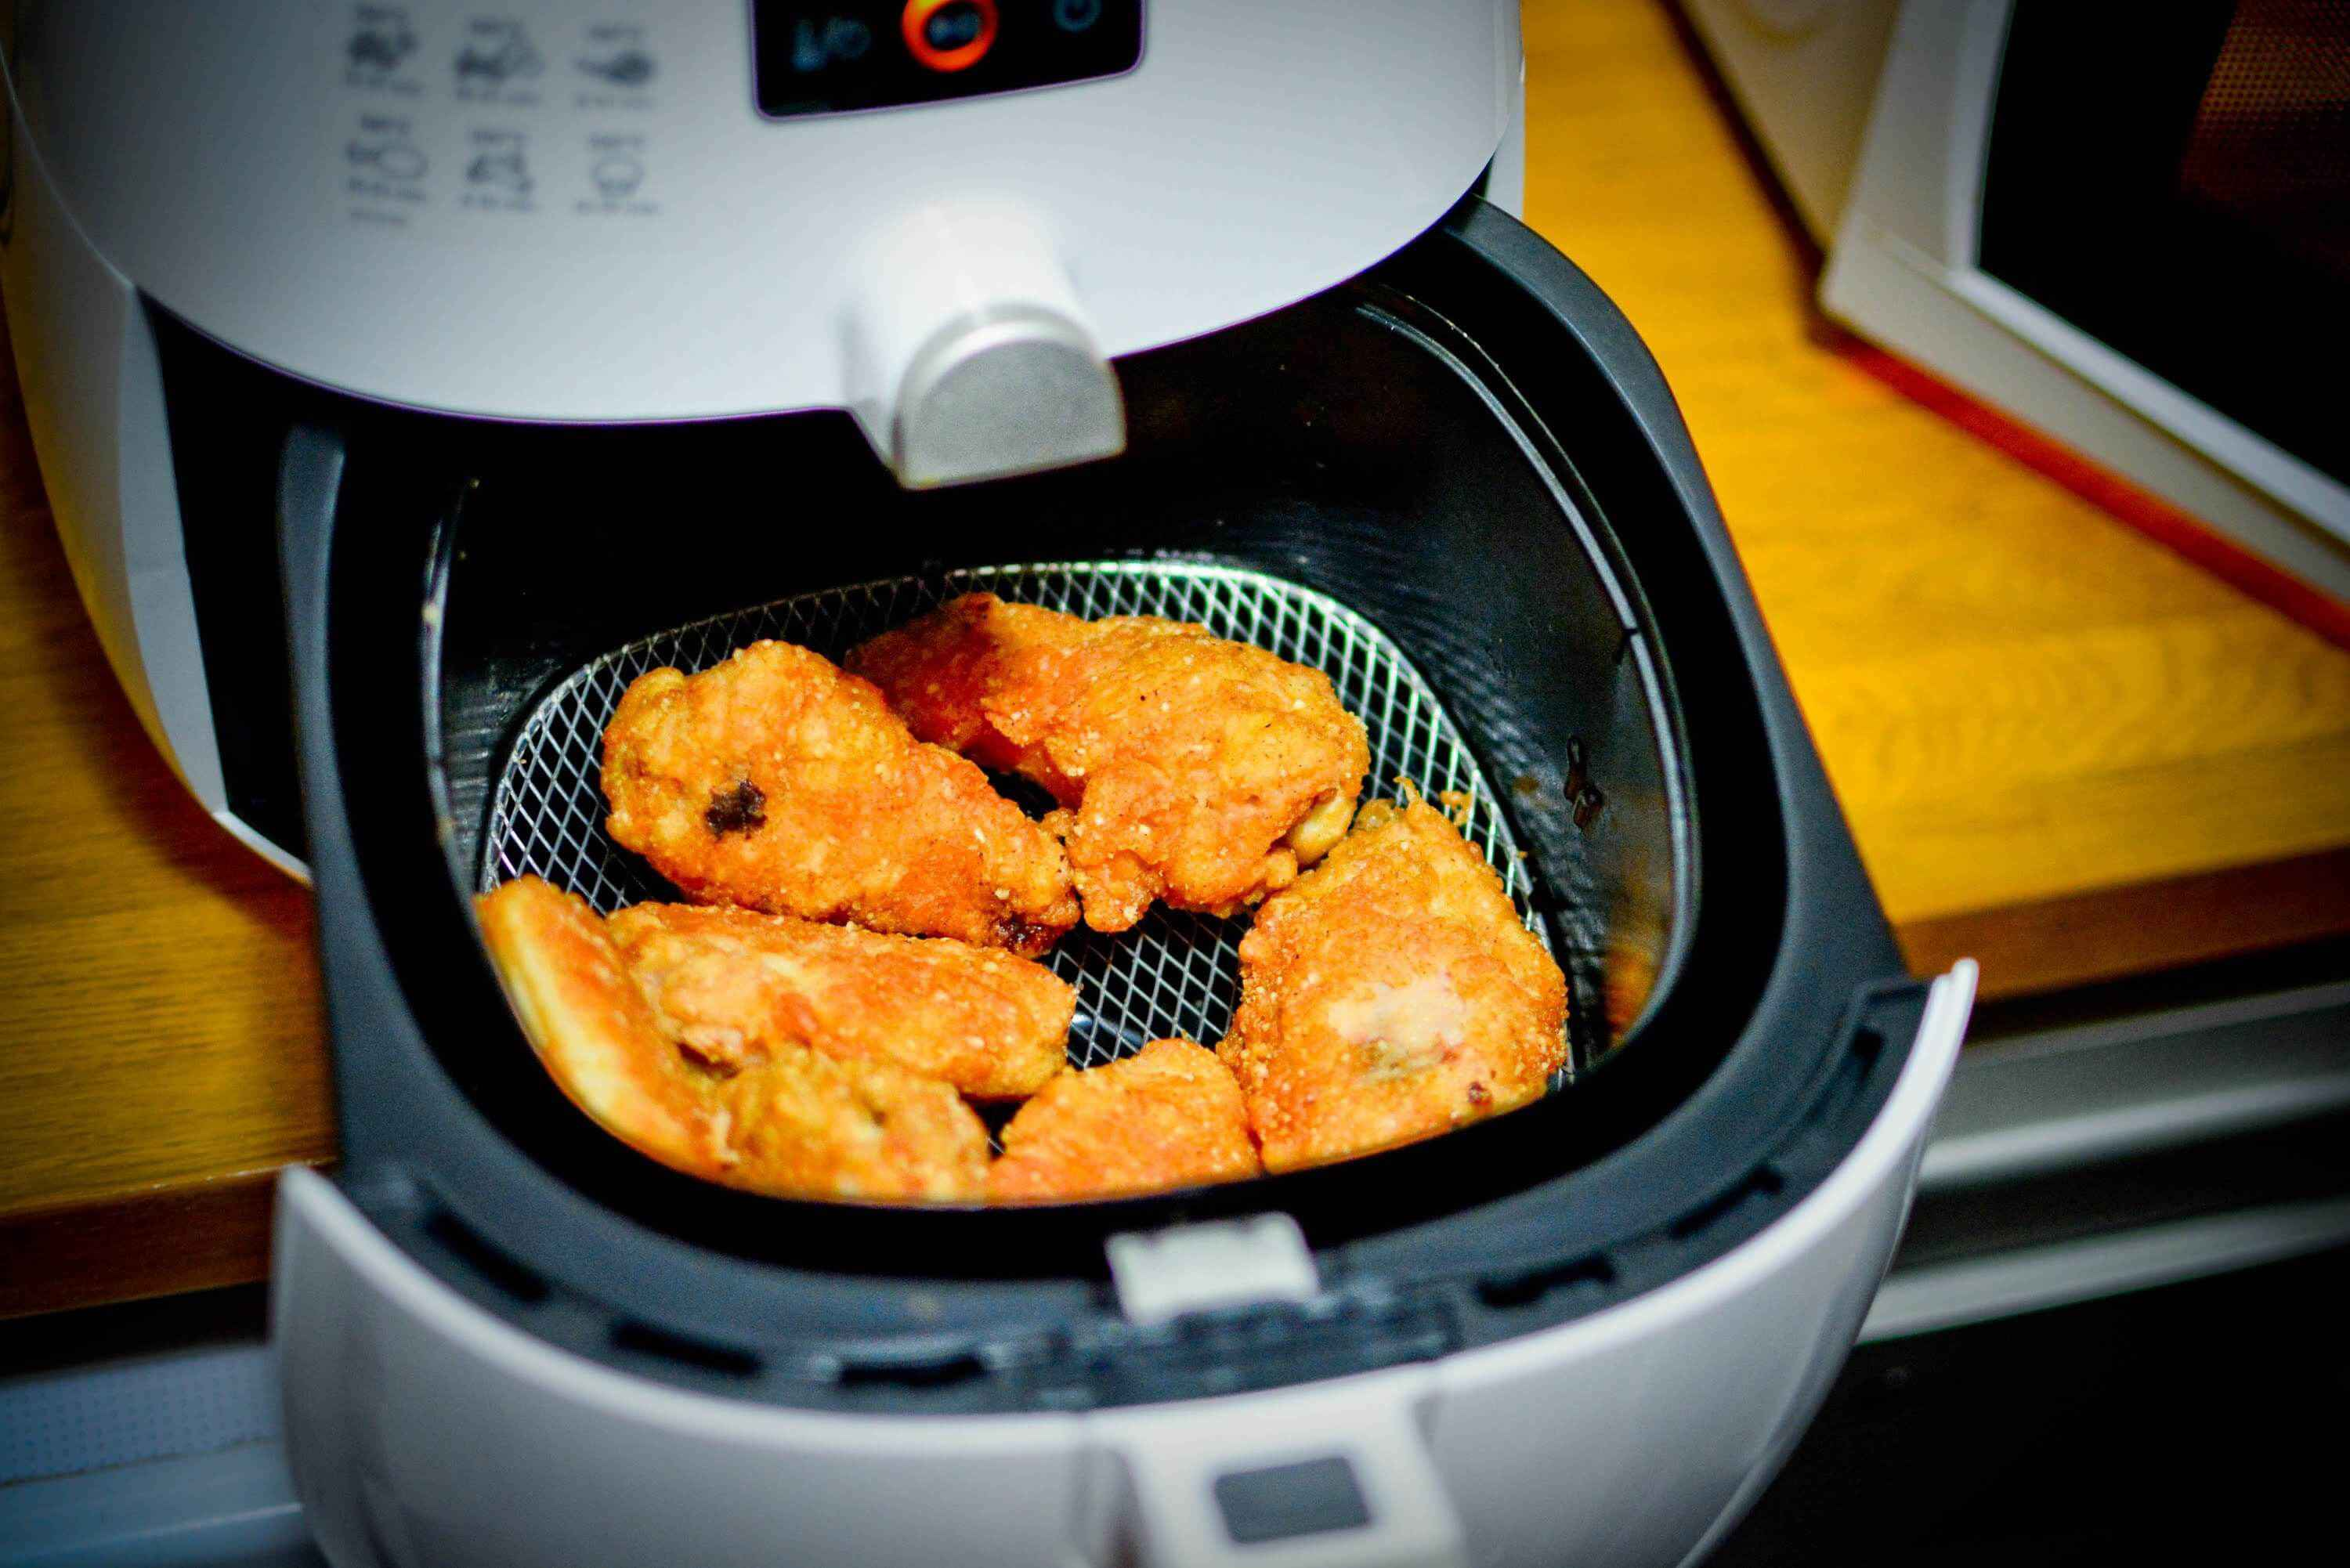 Different Ways to Fry and Cook Without Oil - Air Fryer health issue